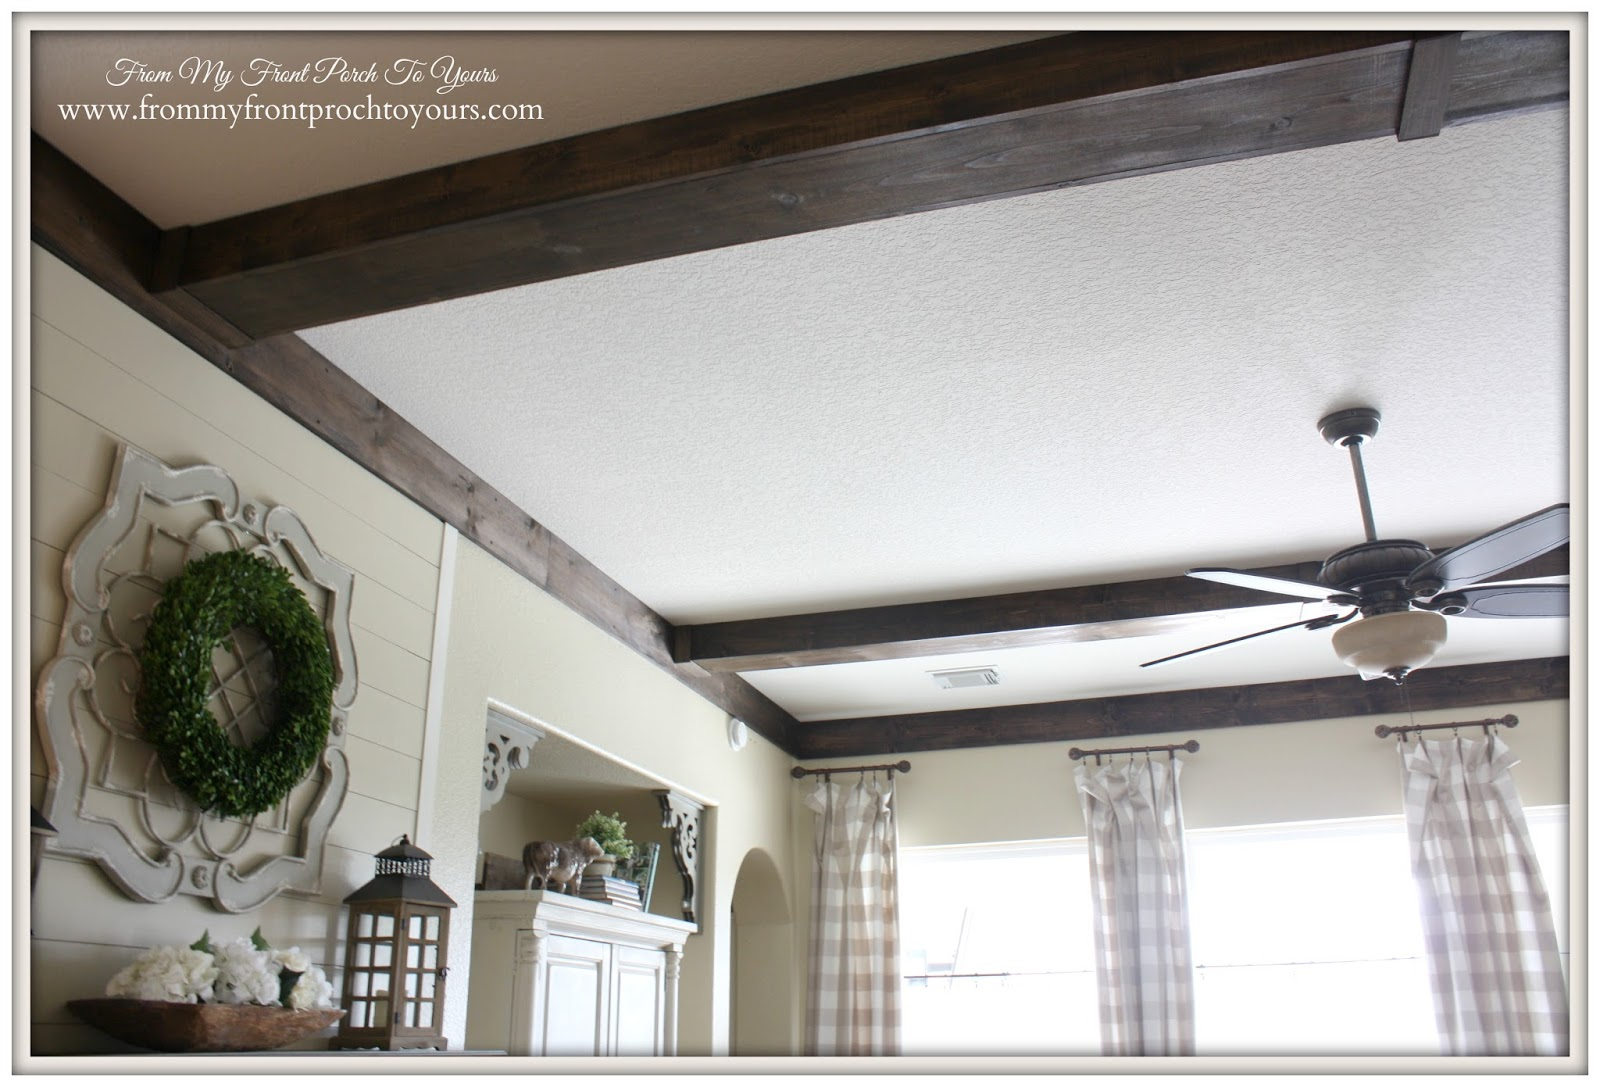 From My Front Porch To Yours: DIY Living Room Wood Beams